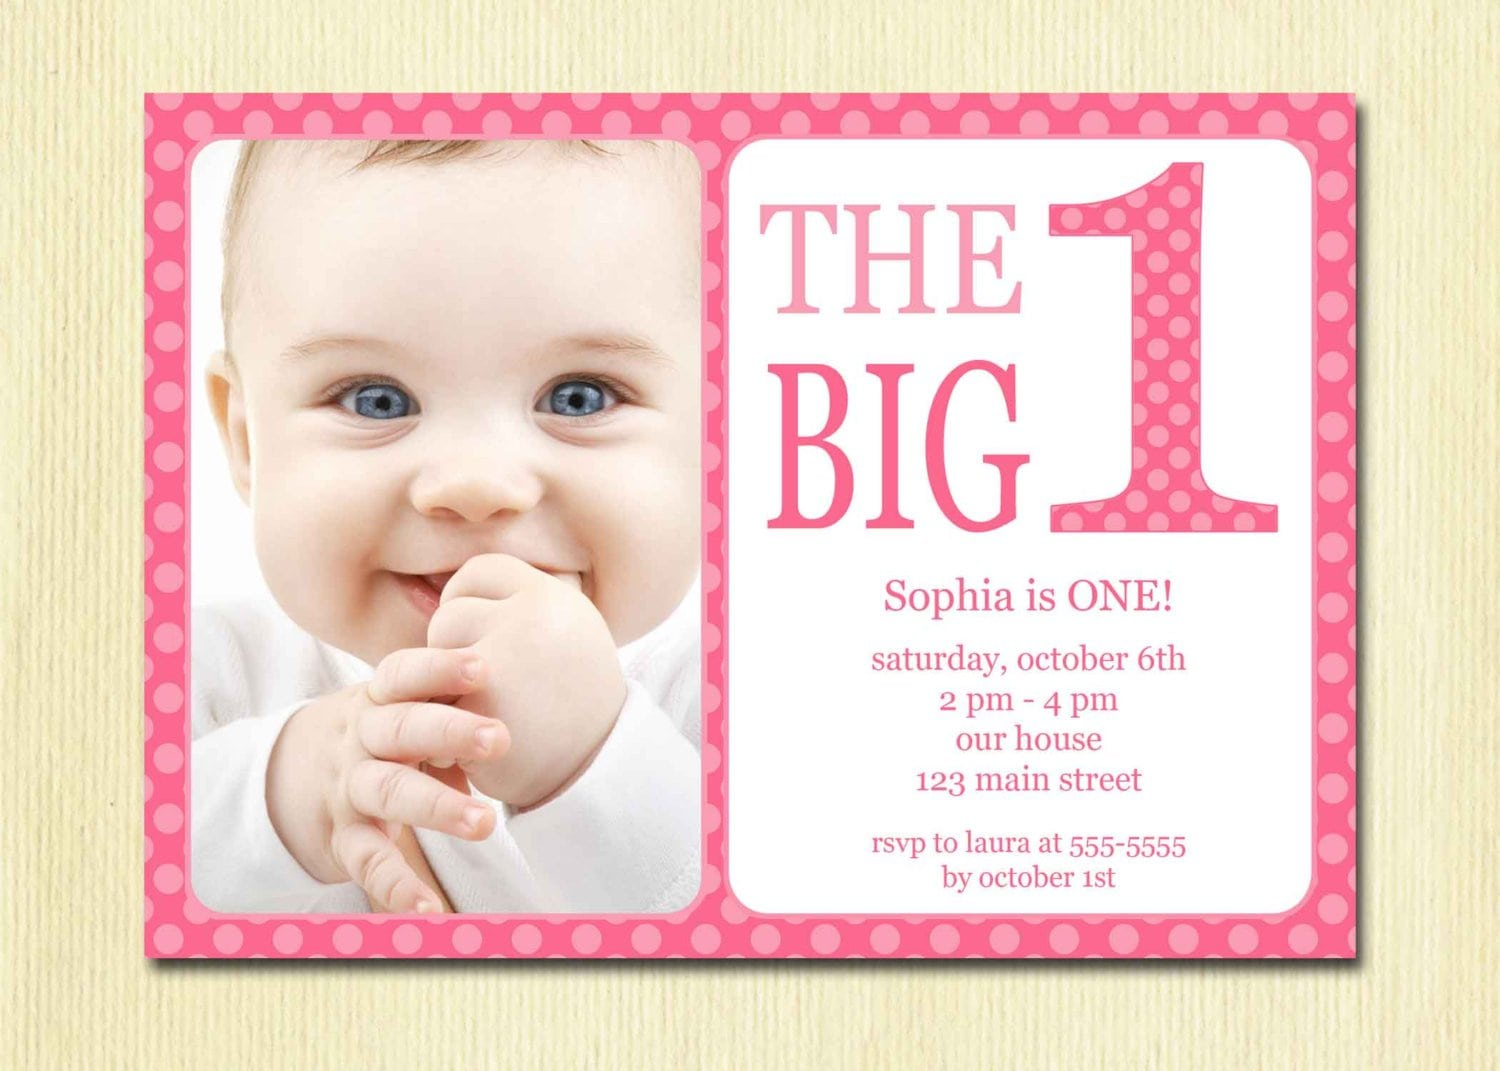 Invitations For Birthday is an amazing ideas you had to choose for invitation design